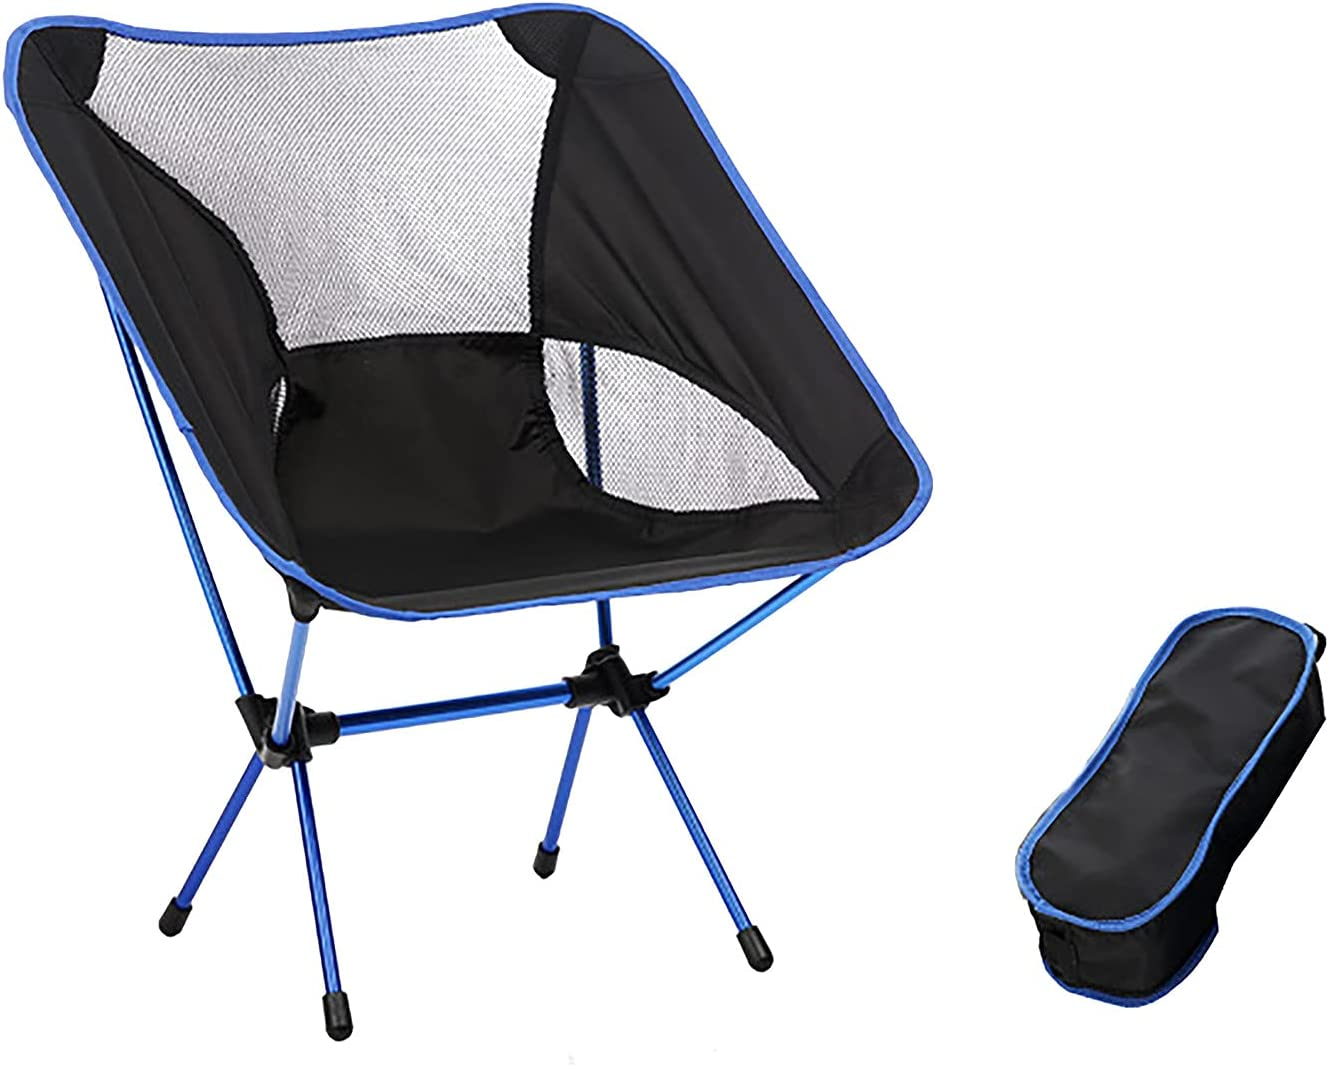 Outdoor Cheap super special price Camping High Back Chair Folding Cha Ultralight Portable 67% OFF of fixed price